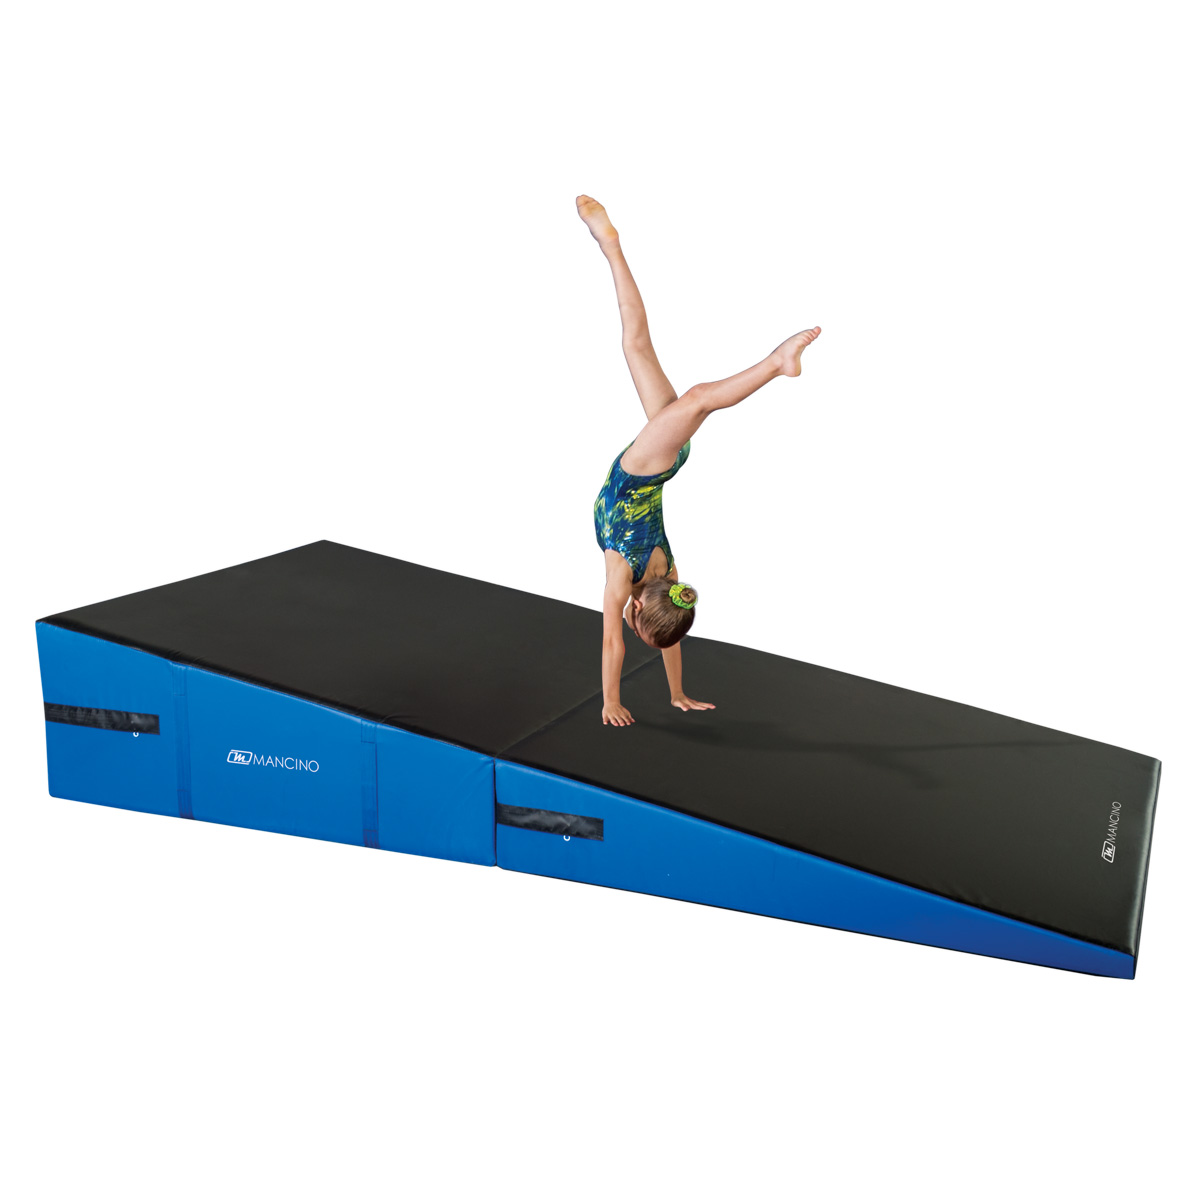 gymnast doing a front handspring on large folding ramp cheese wedge mat - mancino mats - cheese wedge mats